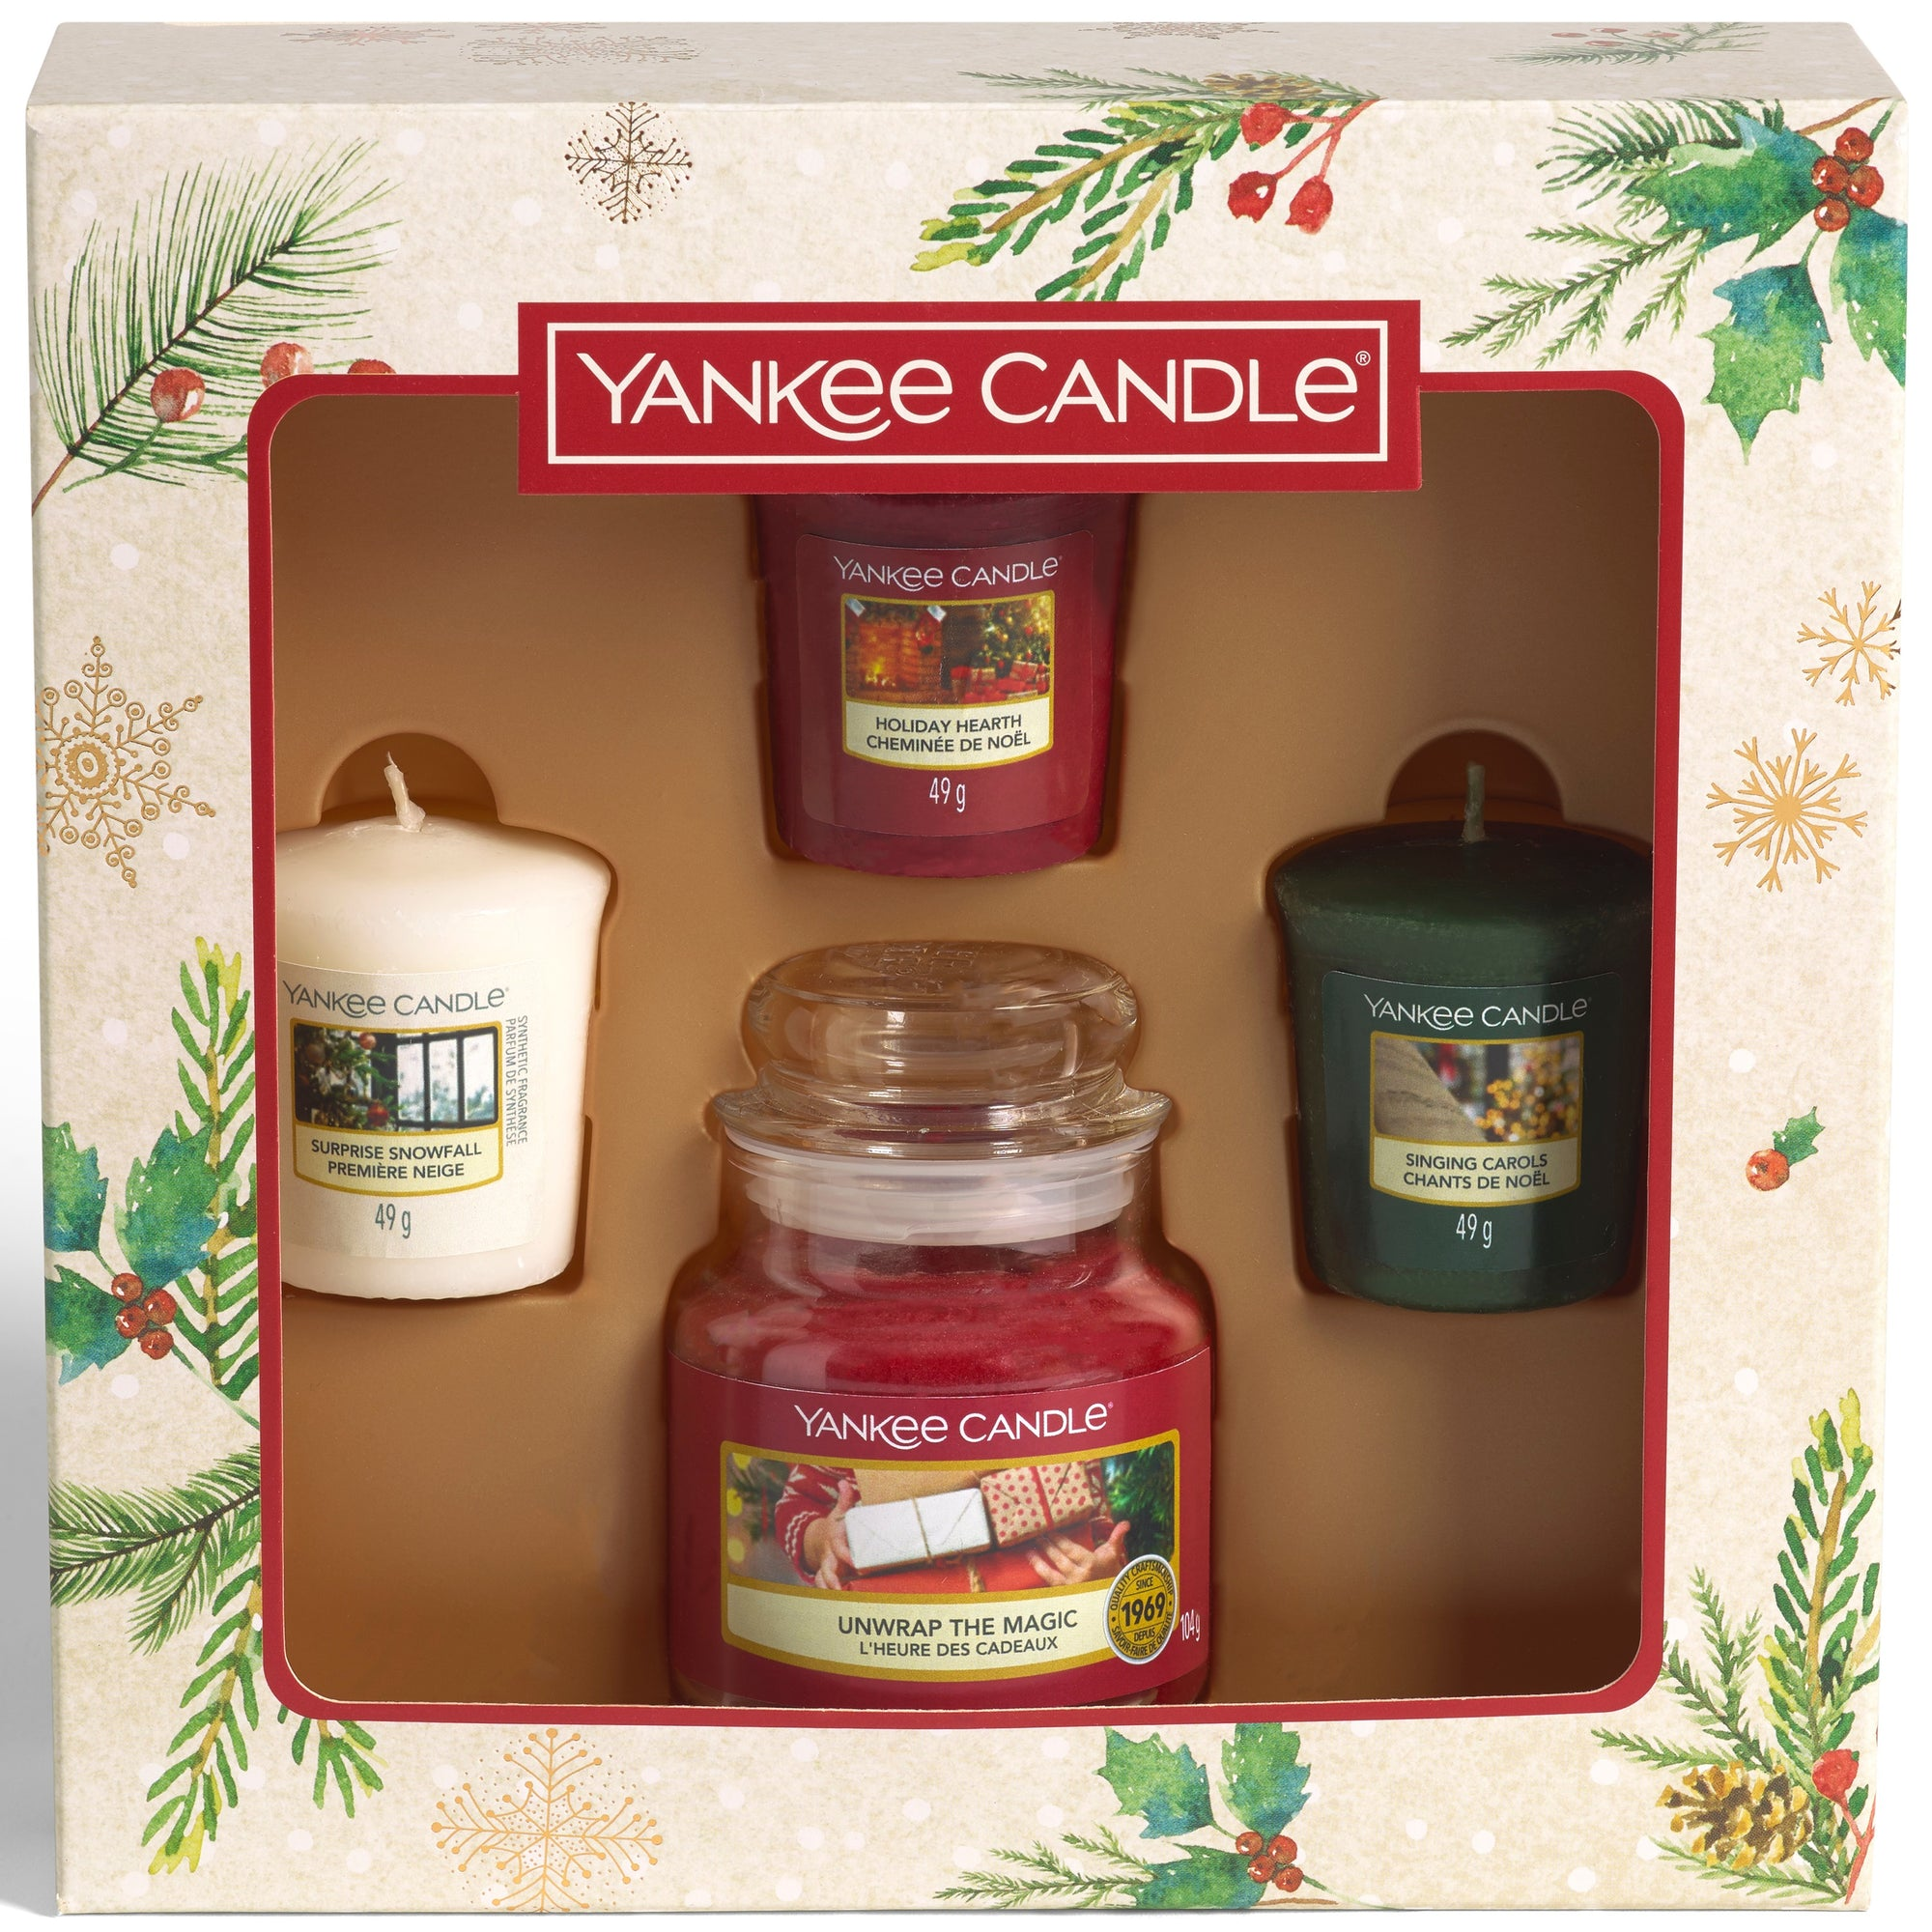 Yankee Candle - Small Jar 3 Votive Candle Gift Set